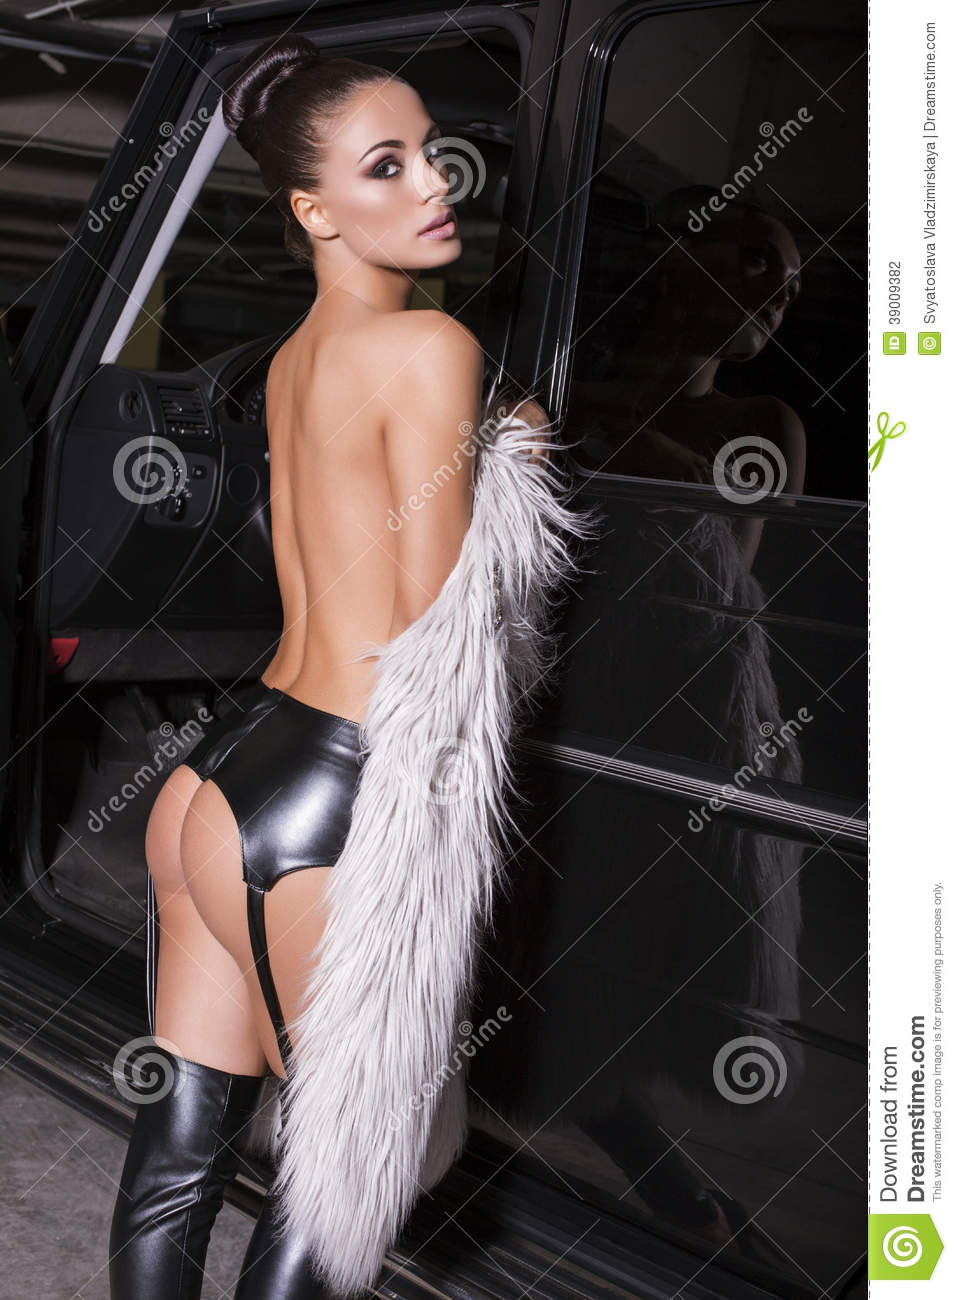 sexy glamour woman with naked back with fur coat posing beside a car